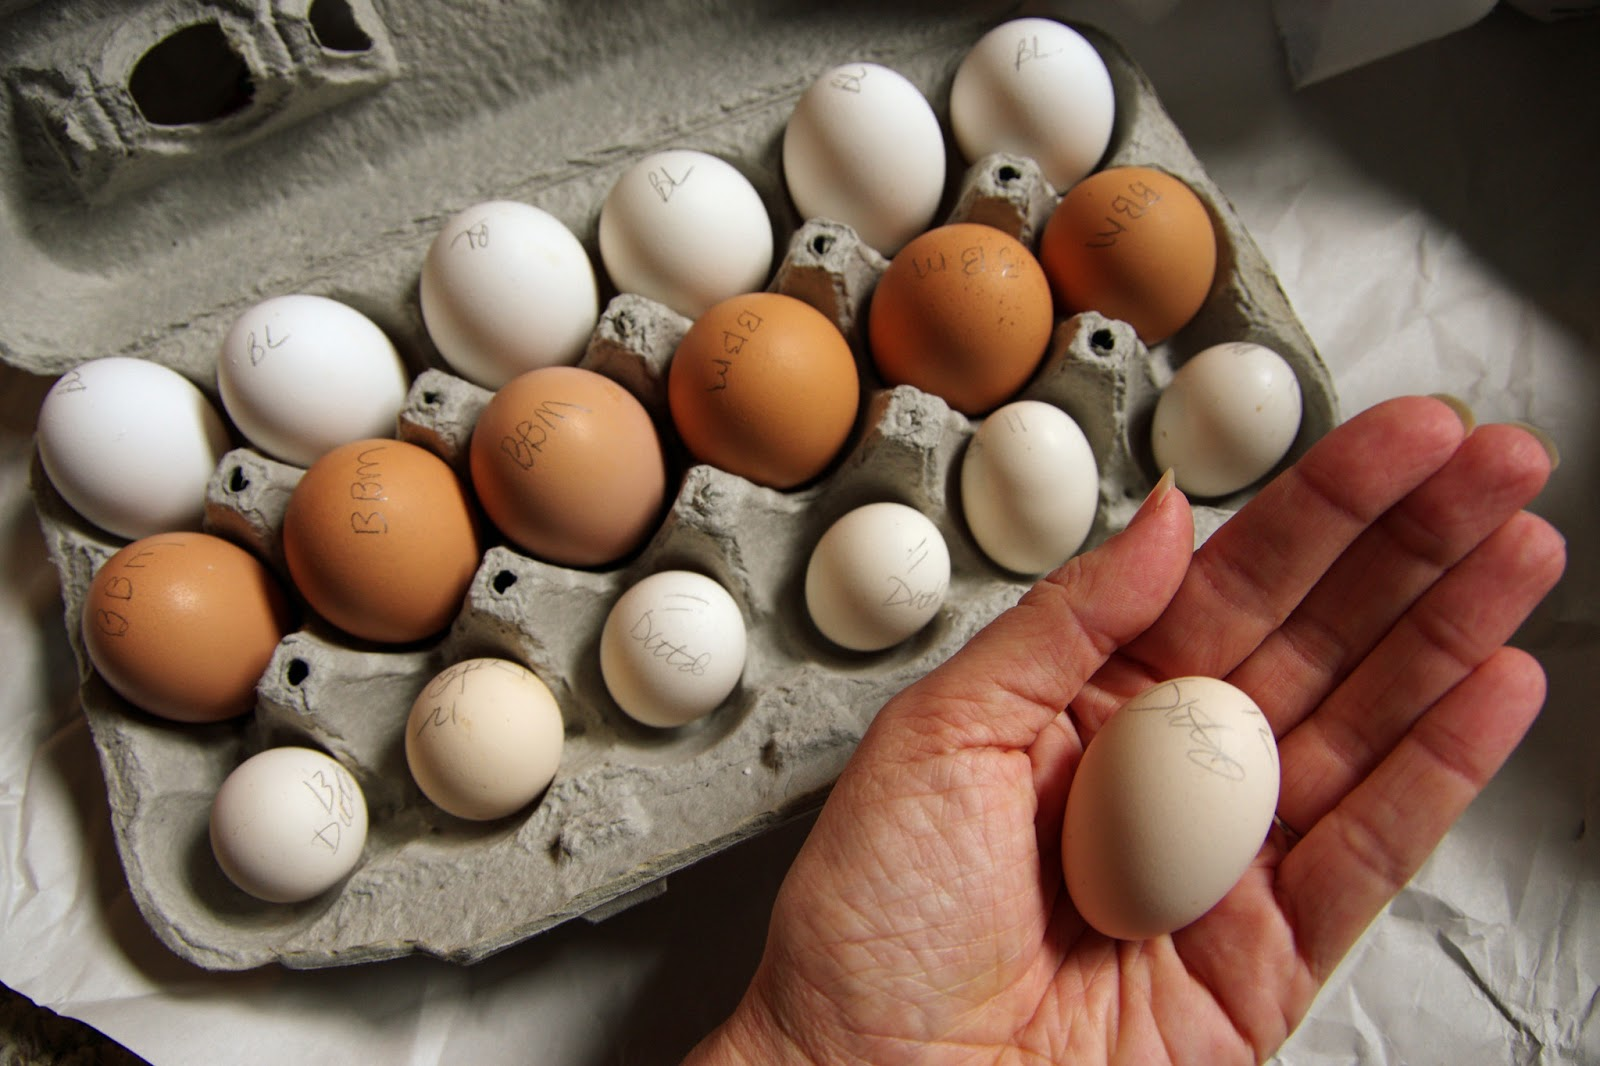 How to Sell Hatching Eggs | Community Chickens